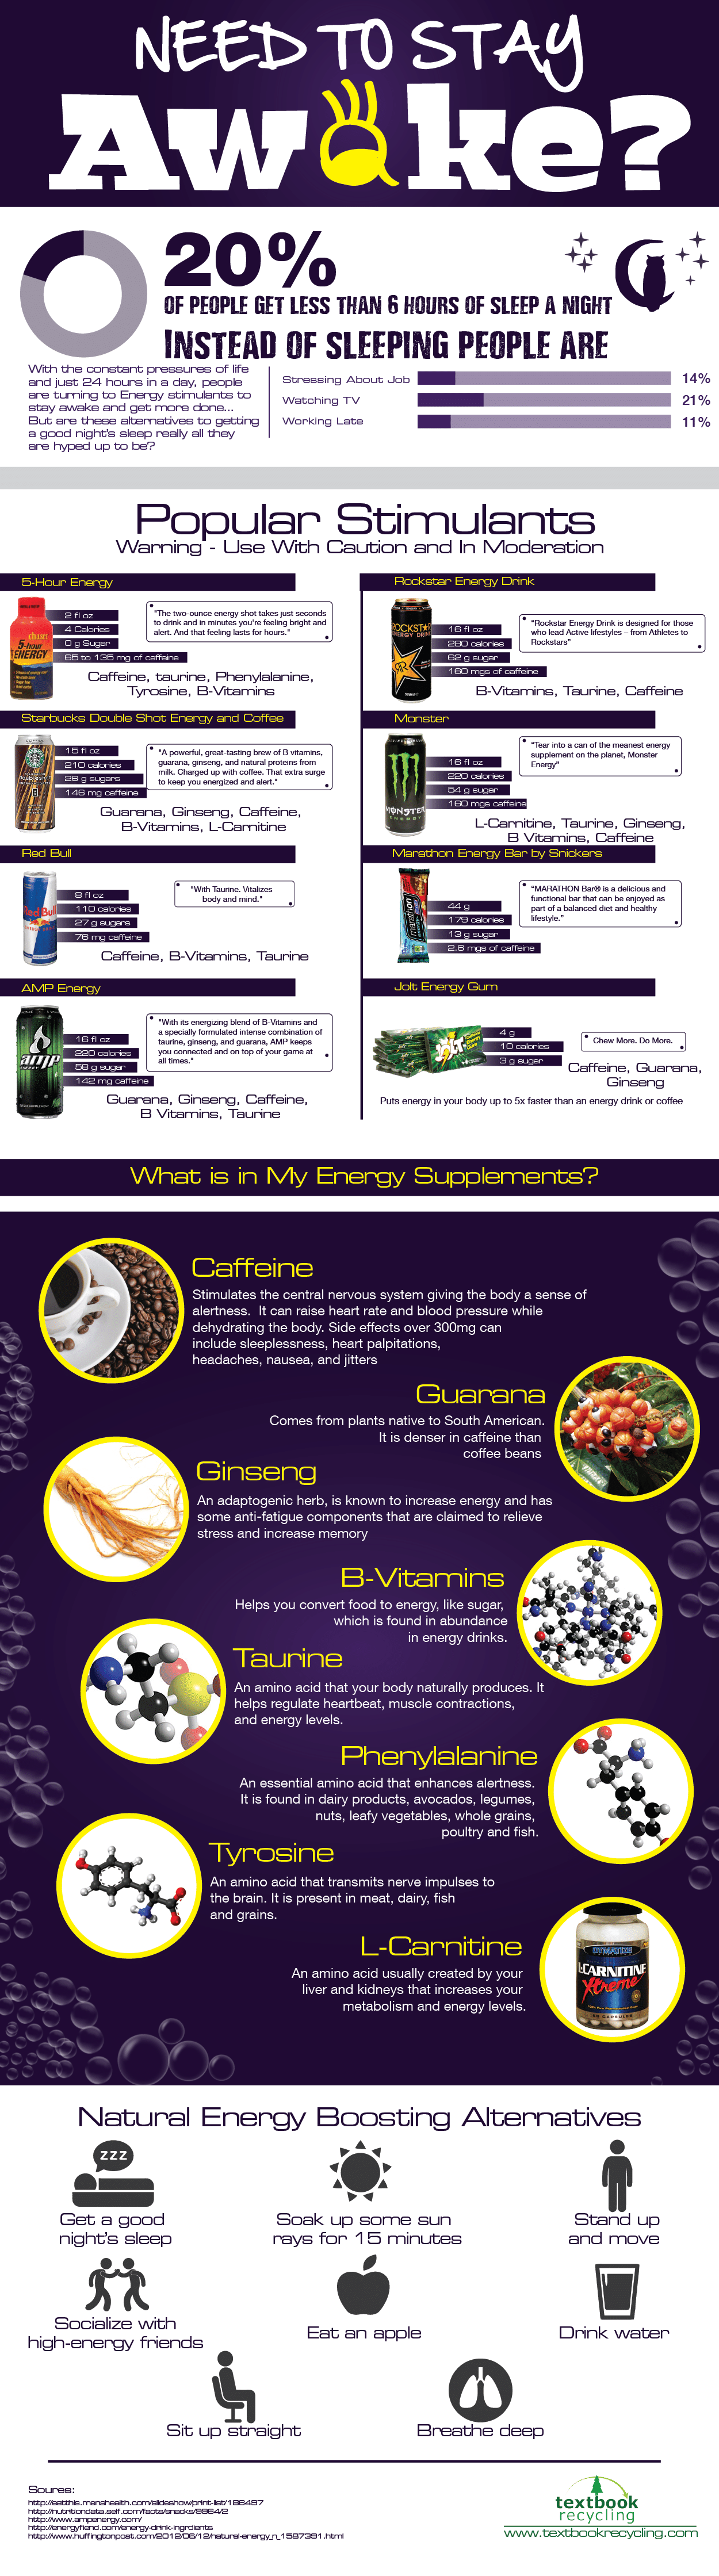 how-to-stay-awake-infographic